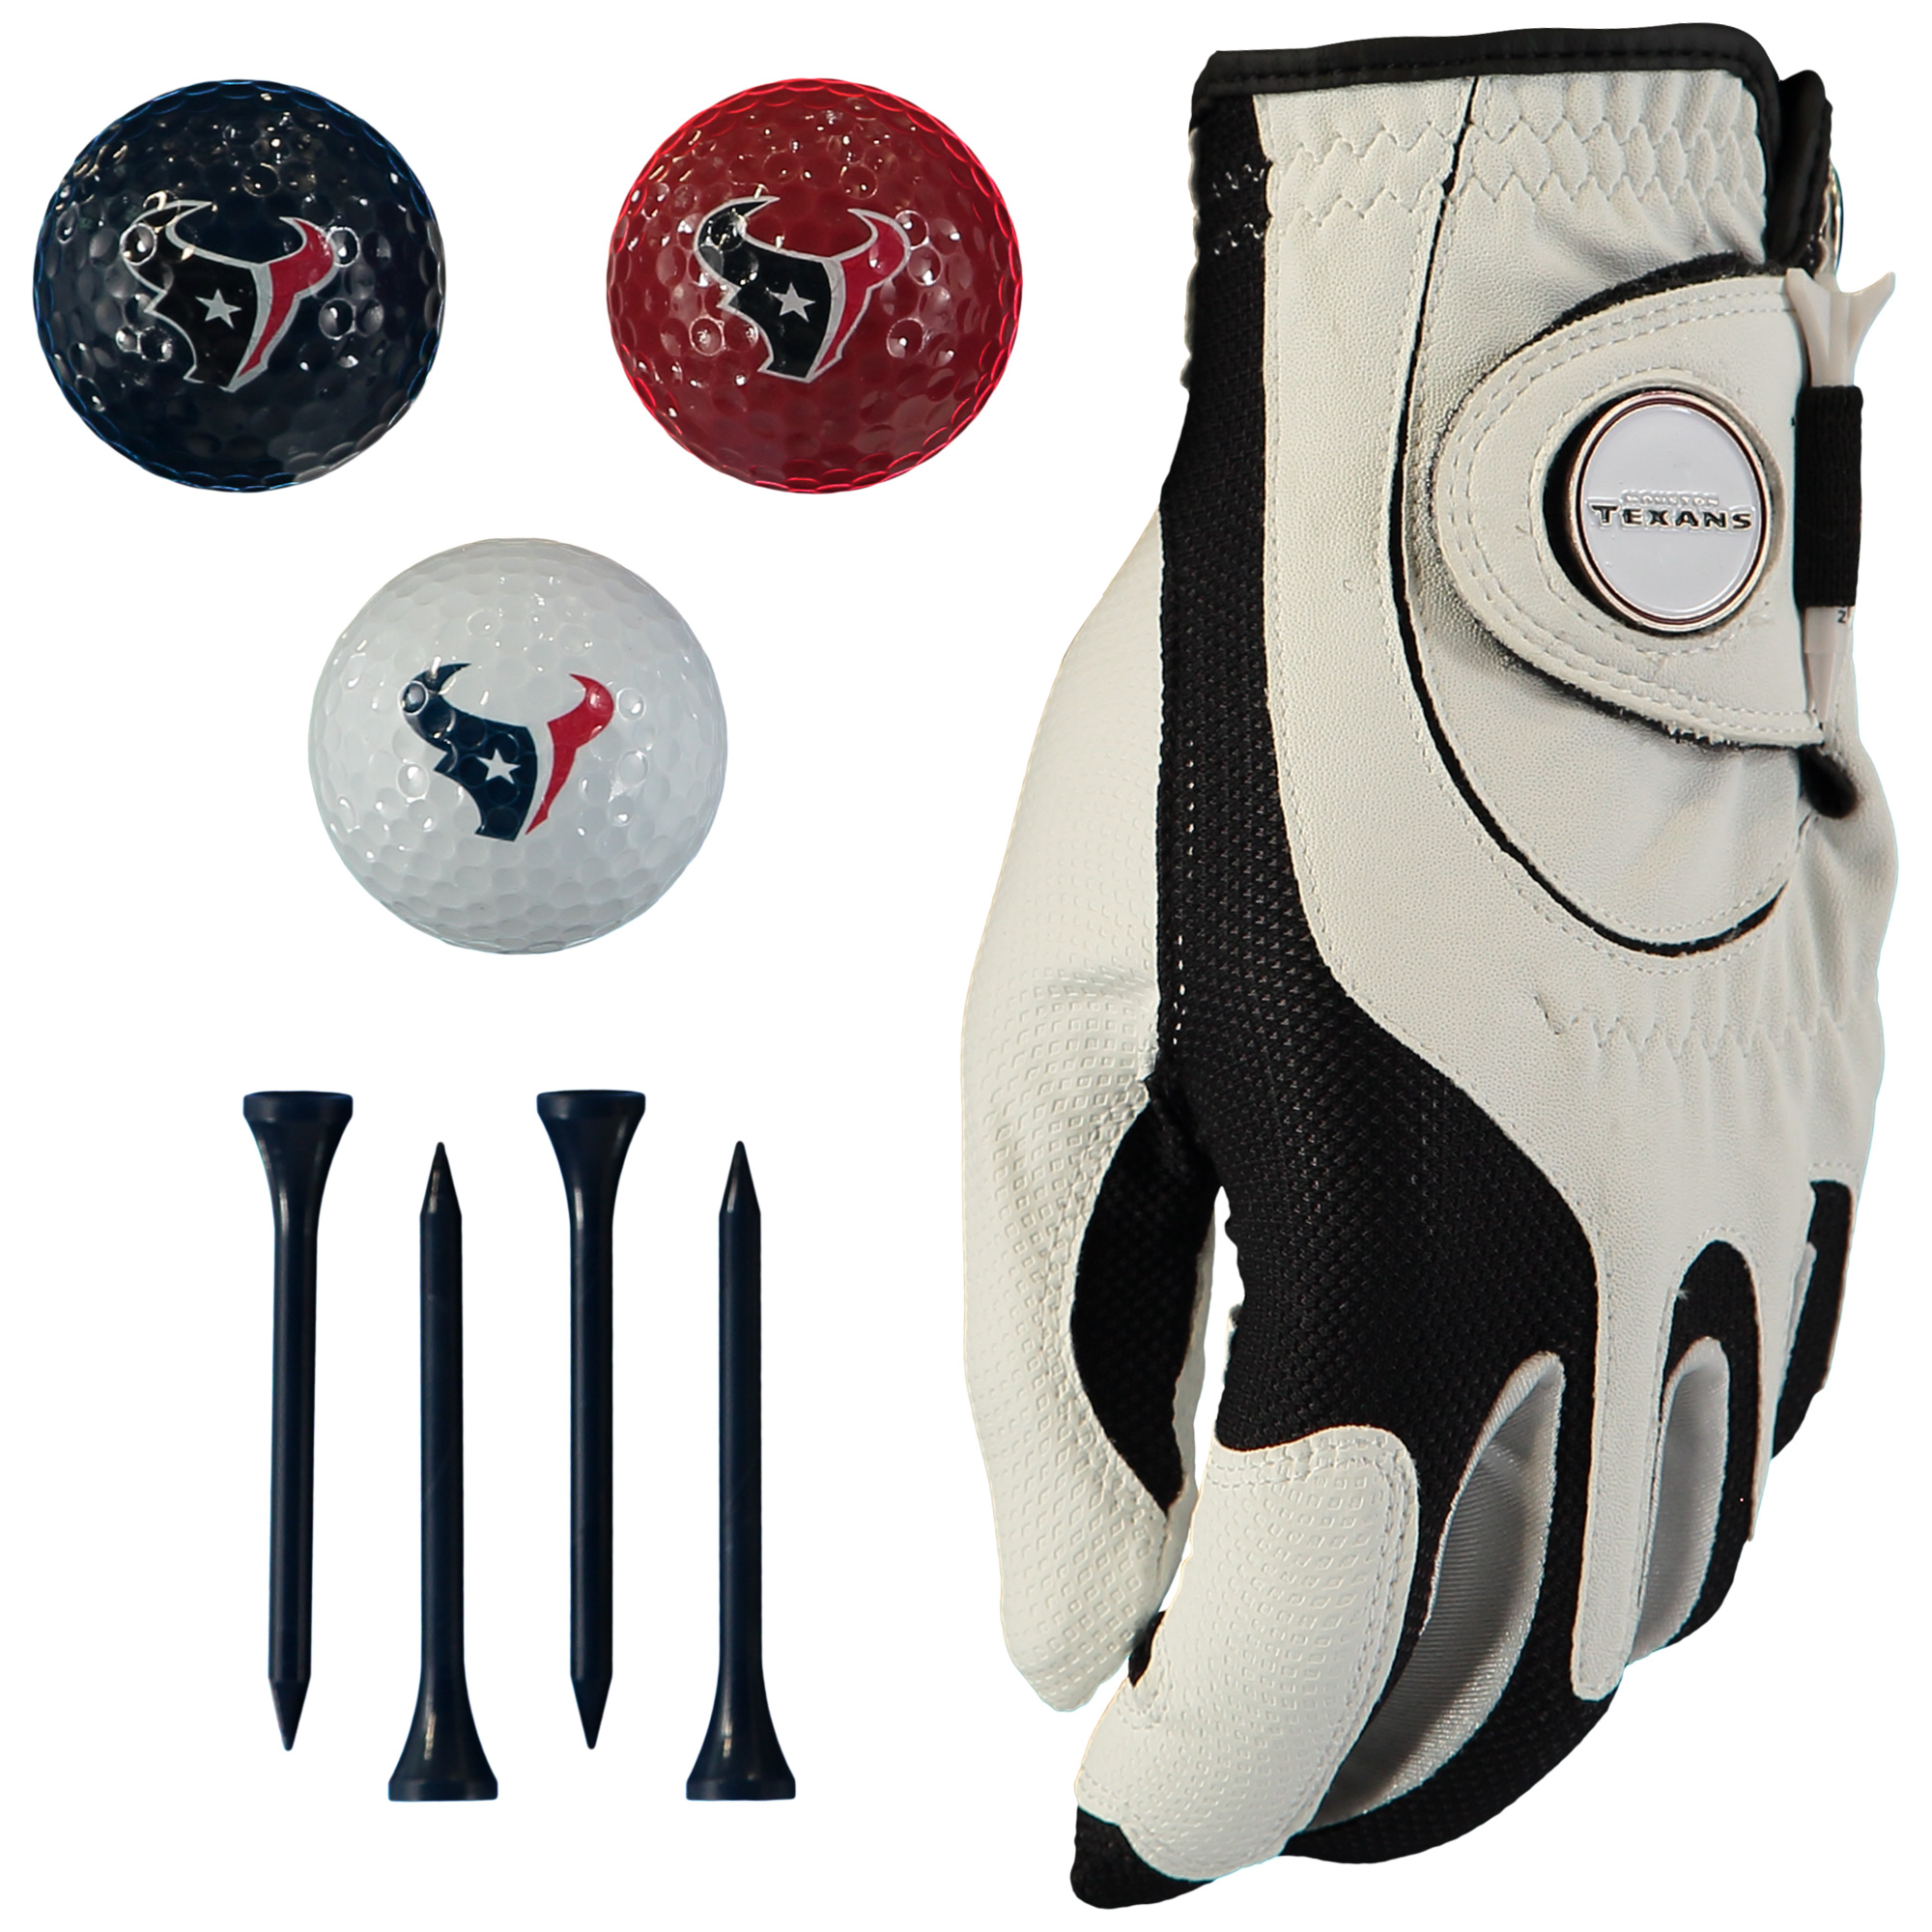 Houston Texans Golf Balls, Tees & Glove Set - No Size